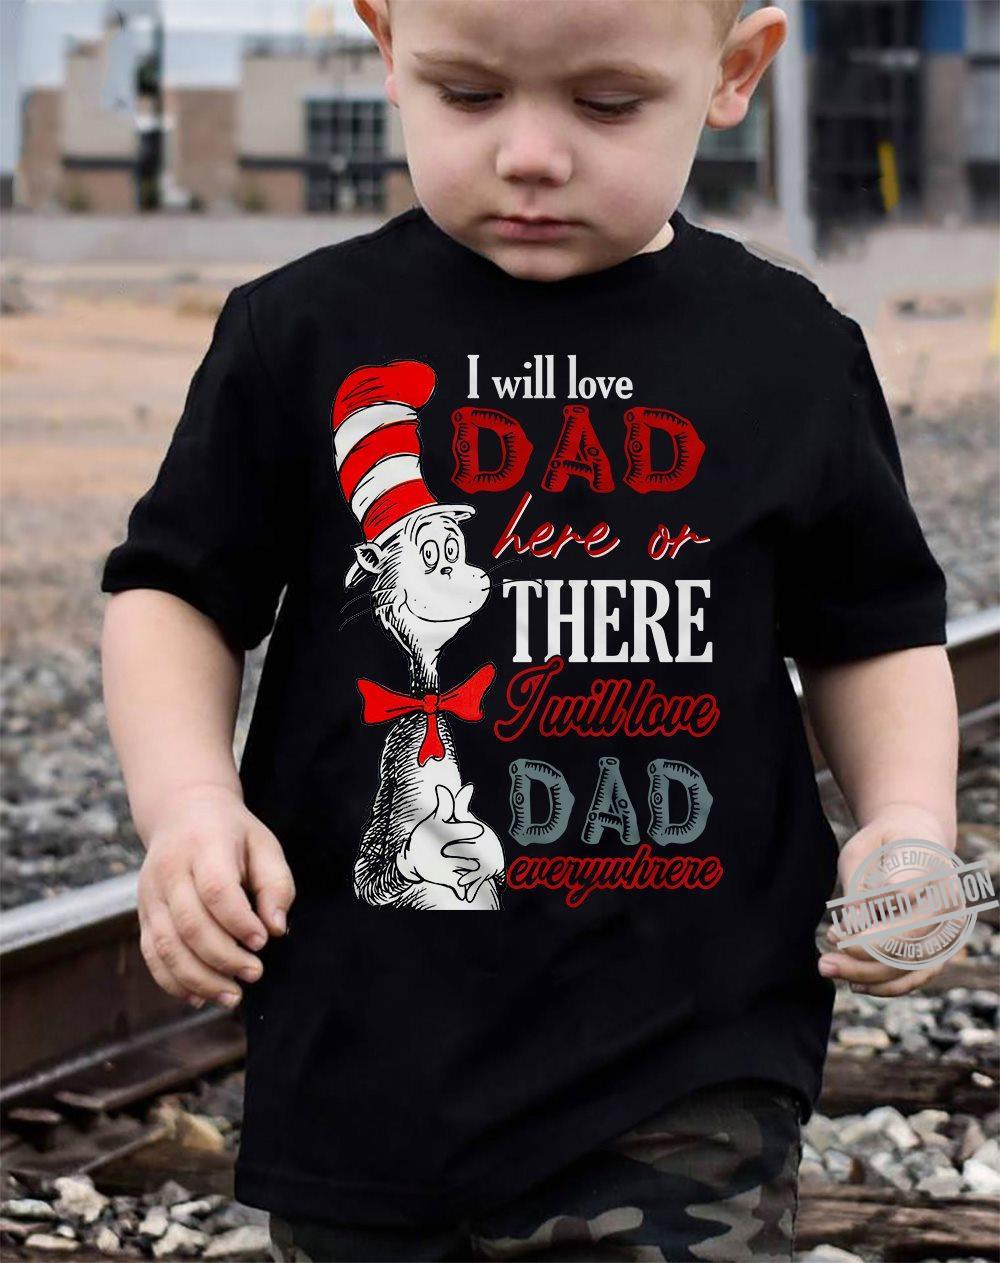 I Will Love Dad Here Or There I Will Love Dad Everywhere Shirt